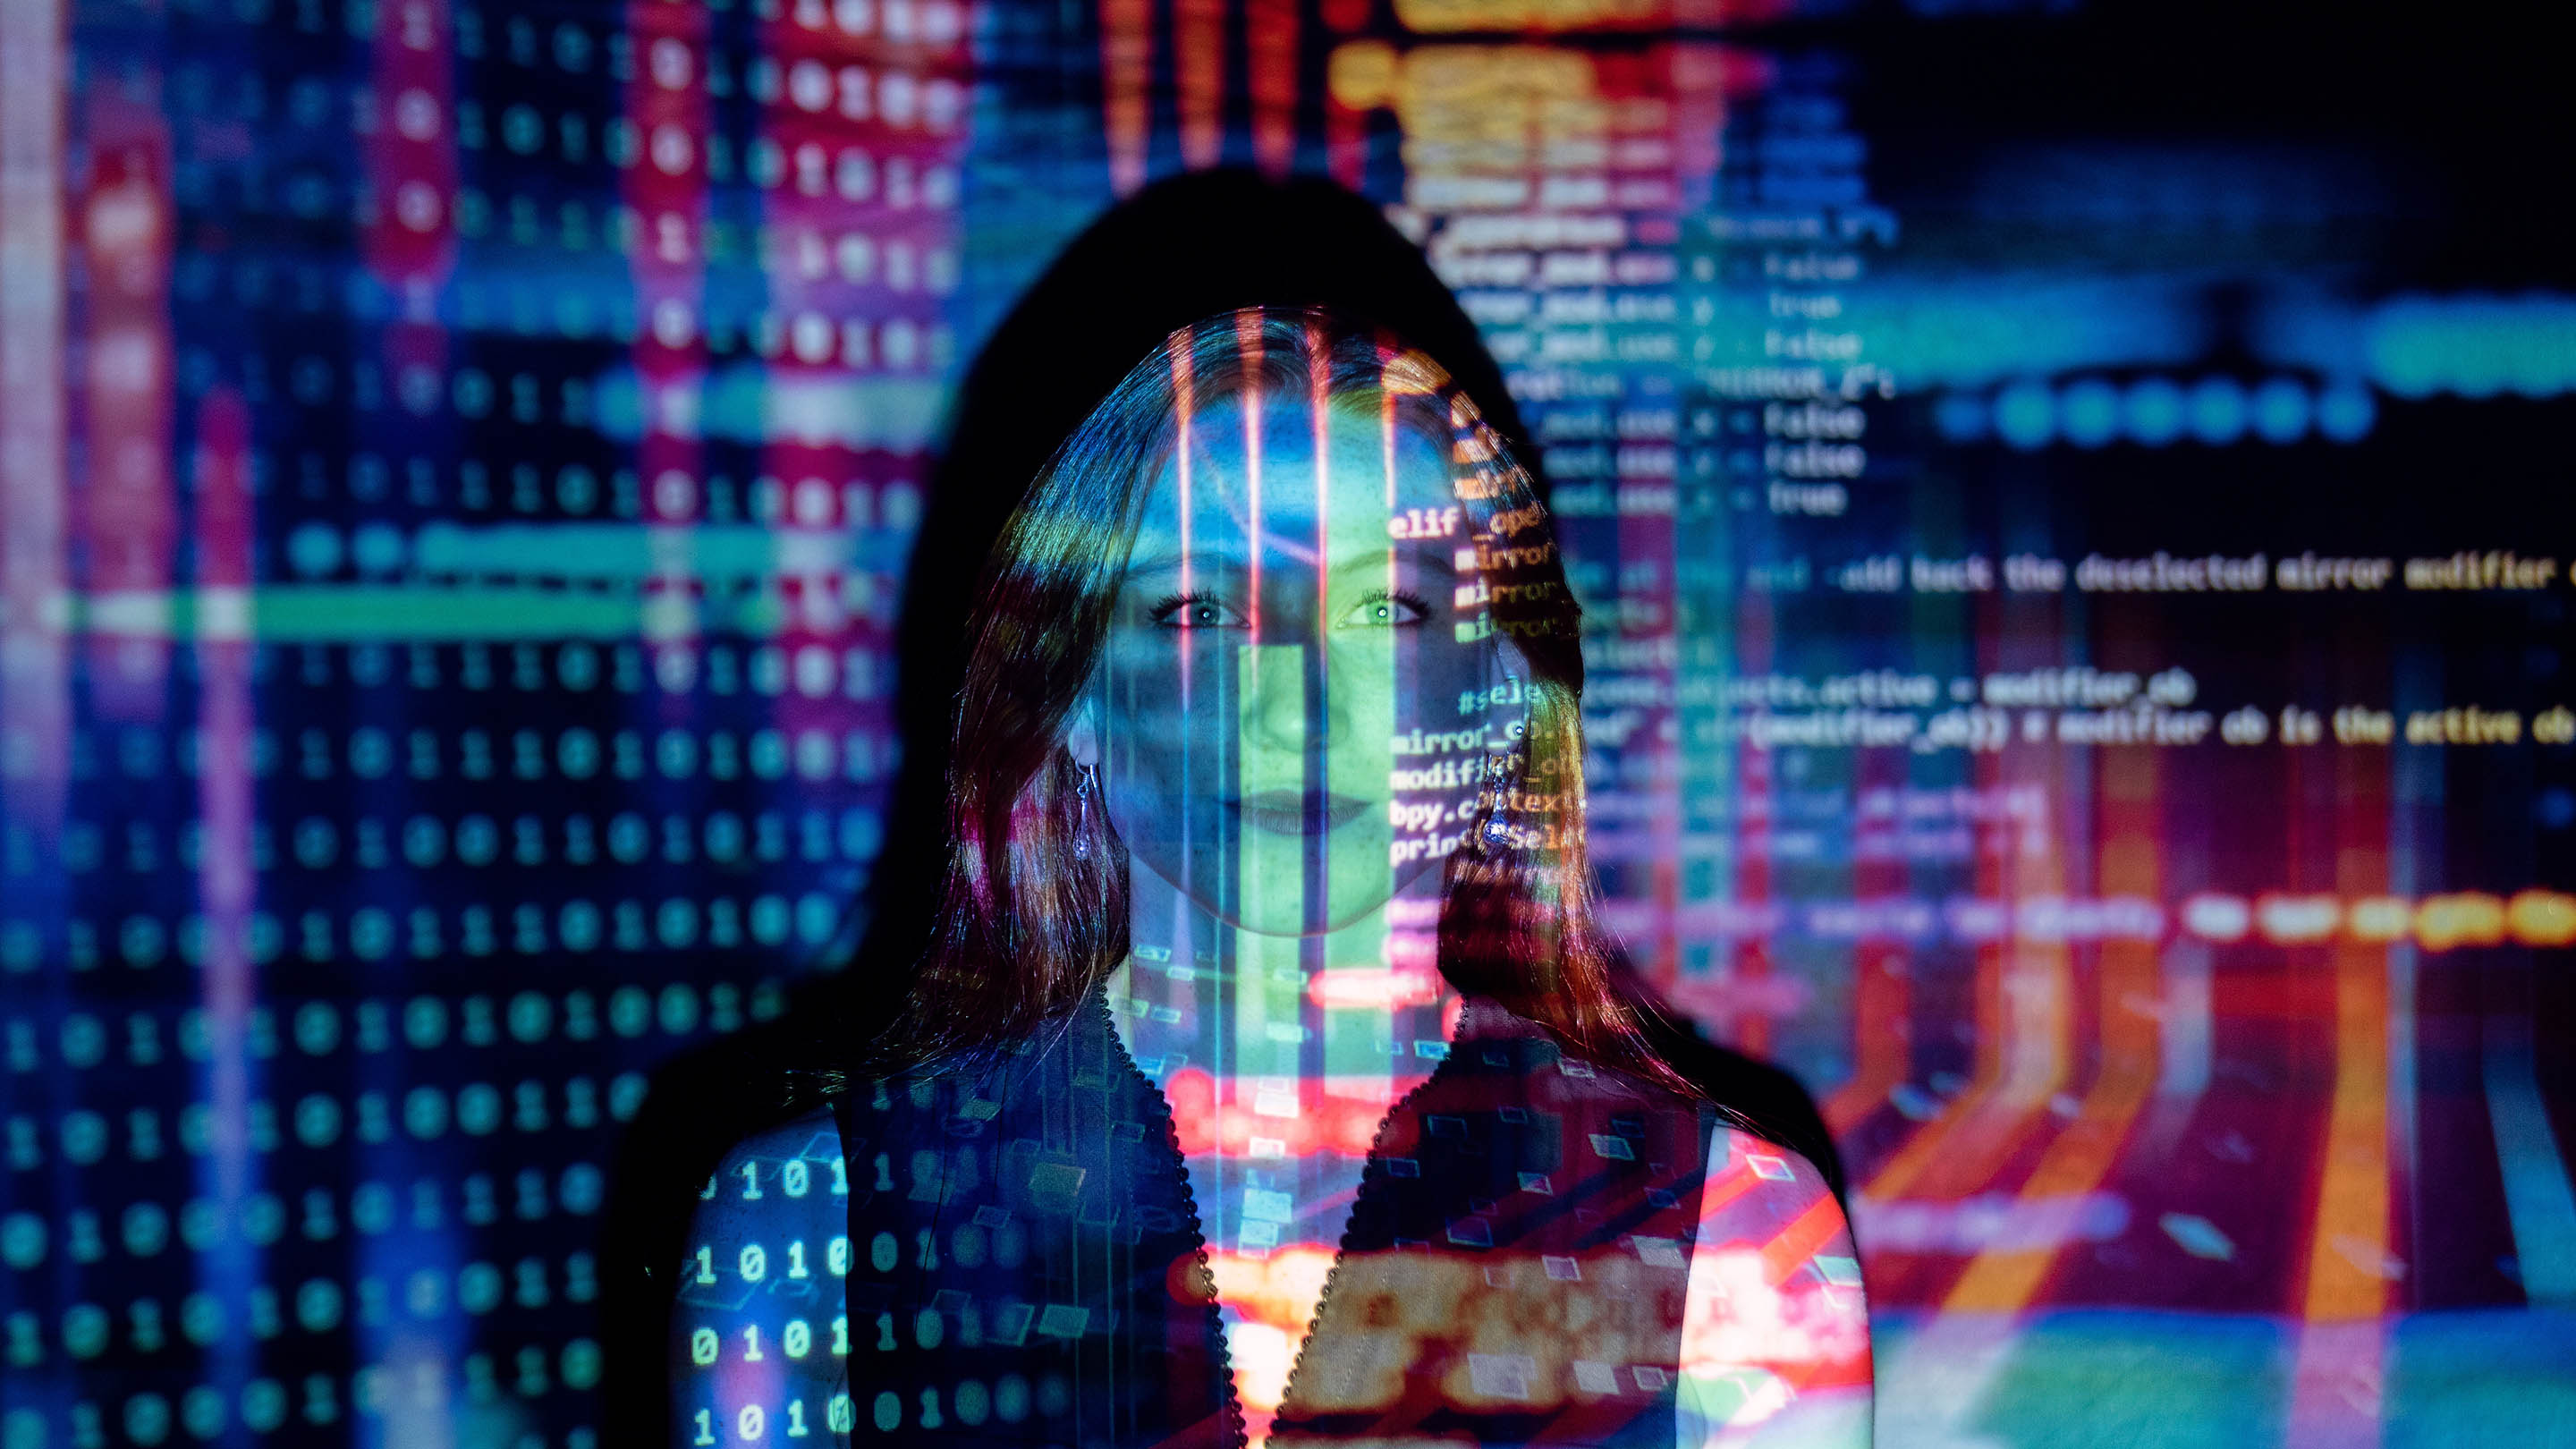 Computer code and lights projected over a woman's face